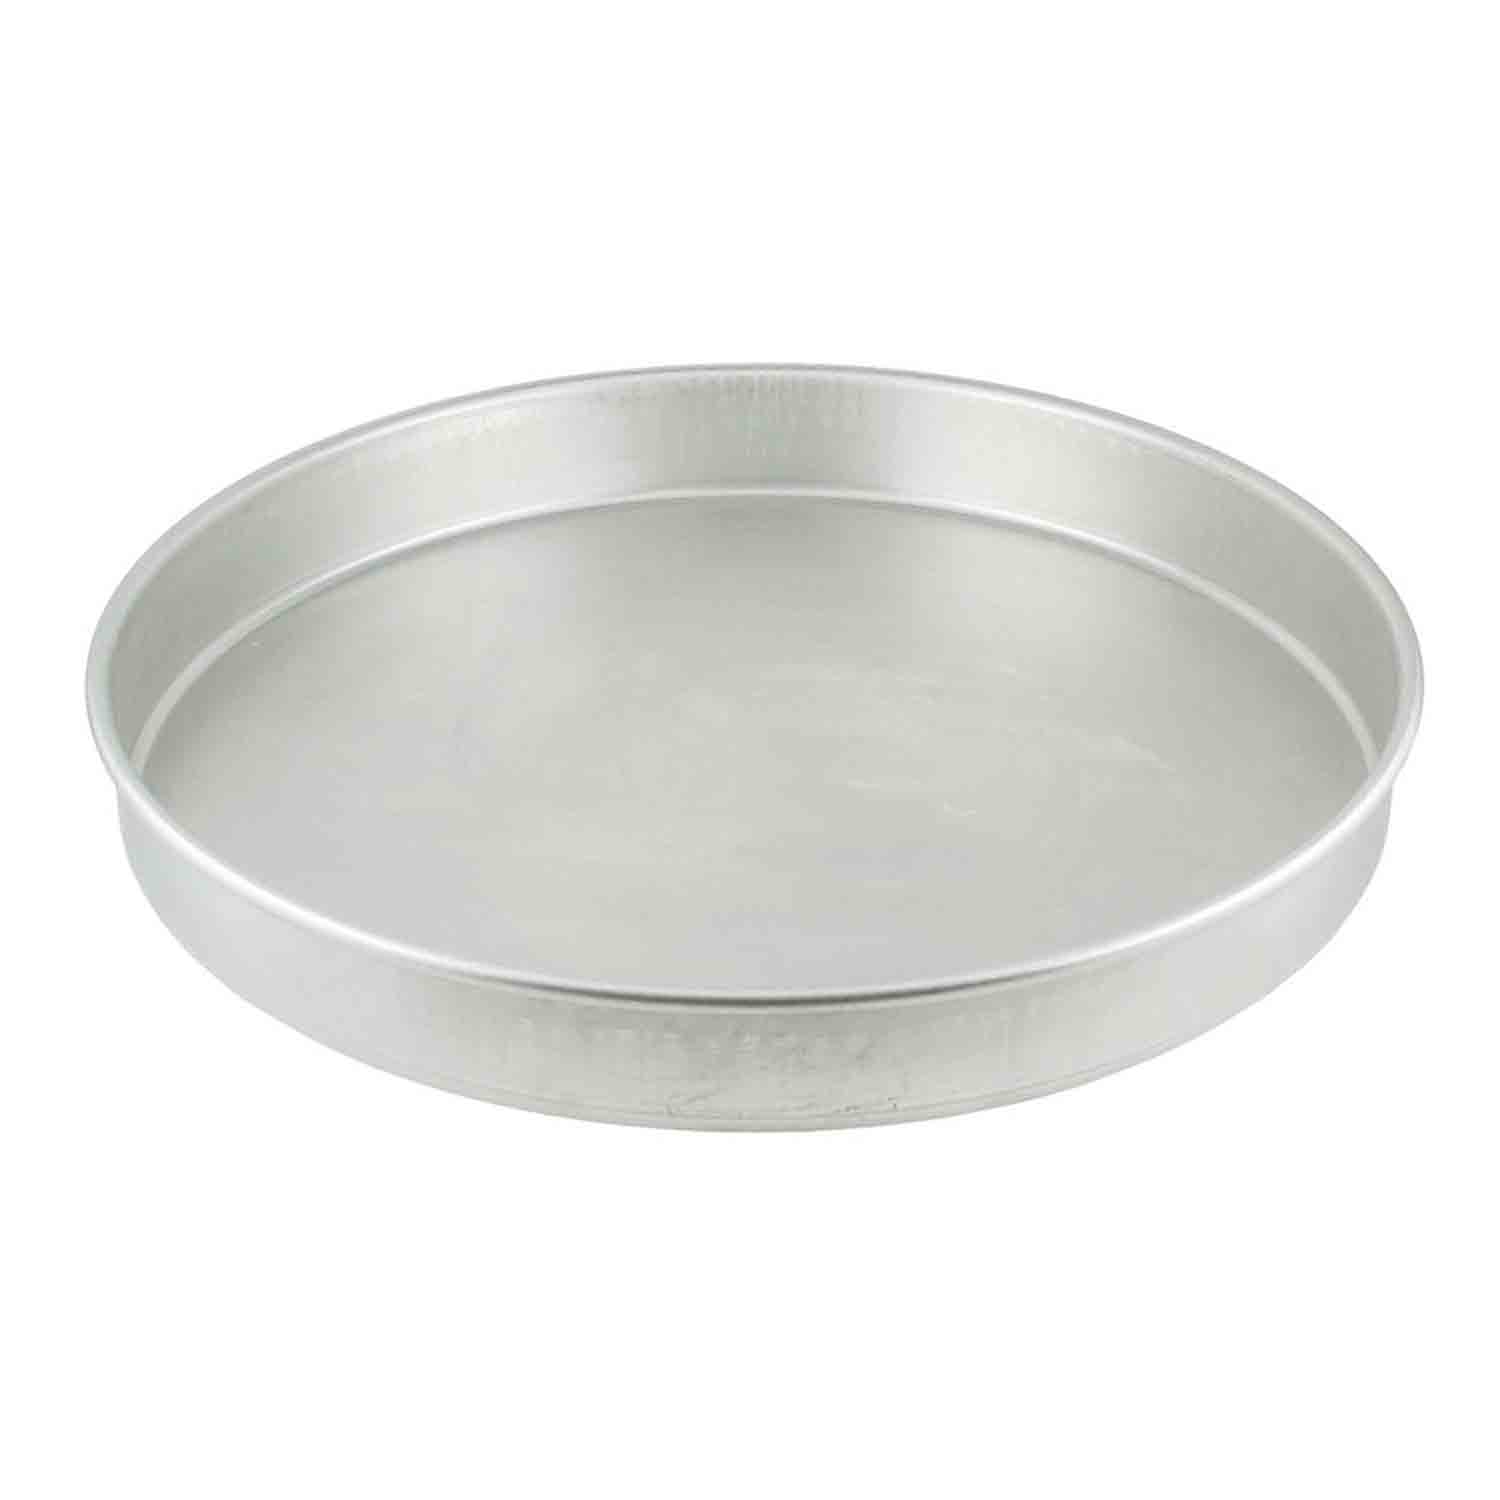 "18 x 2"" Magic Line Round Cake Pan"